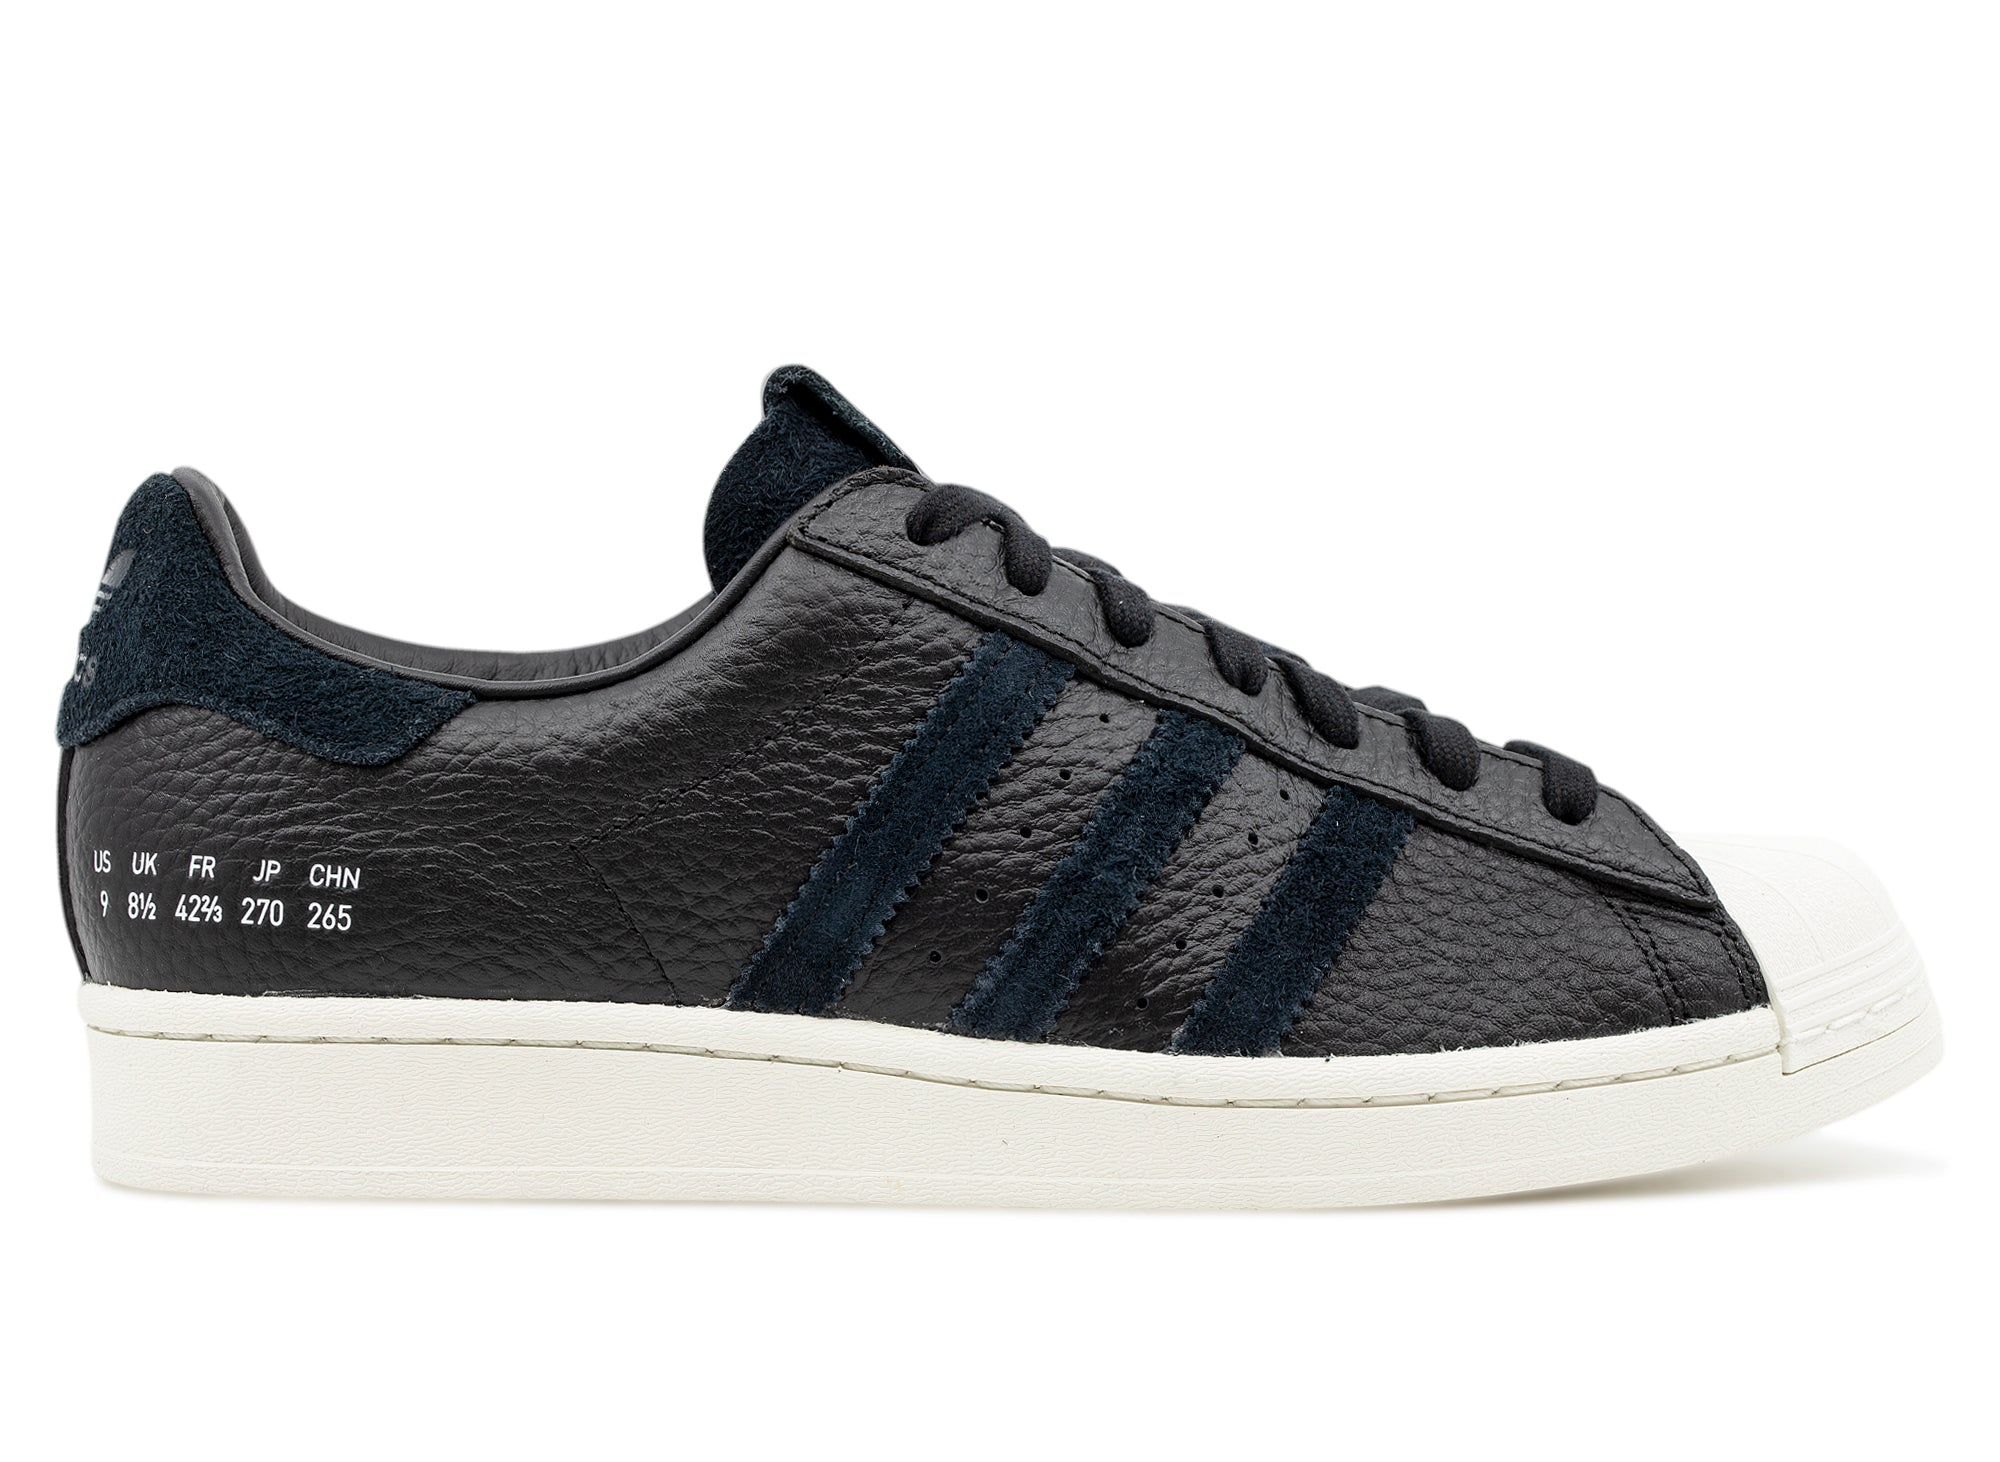 Adidas Superstar Shoes xld